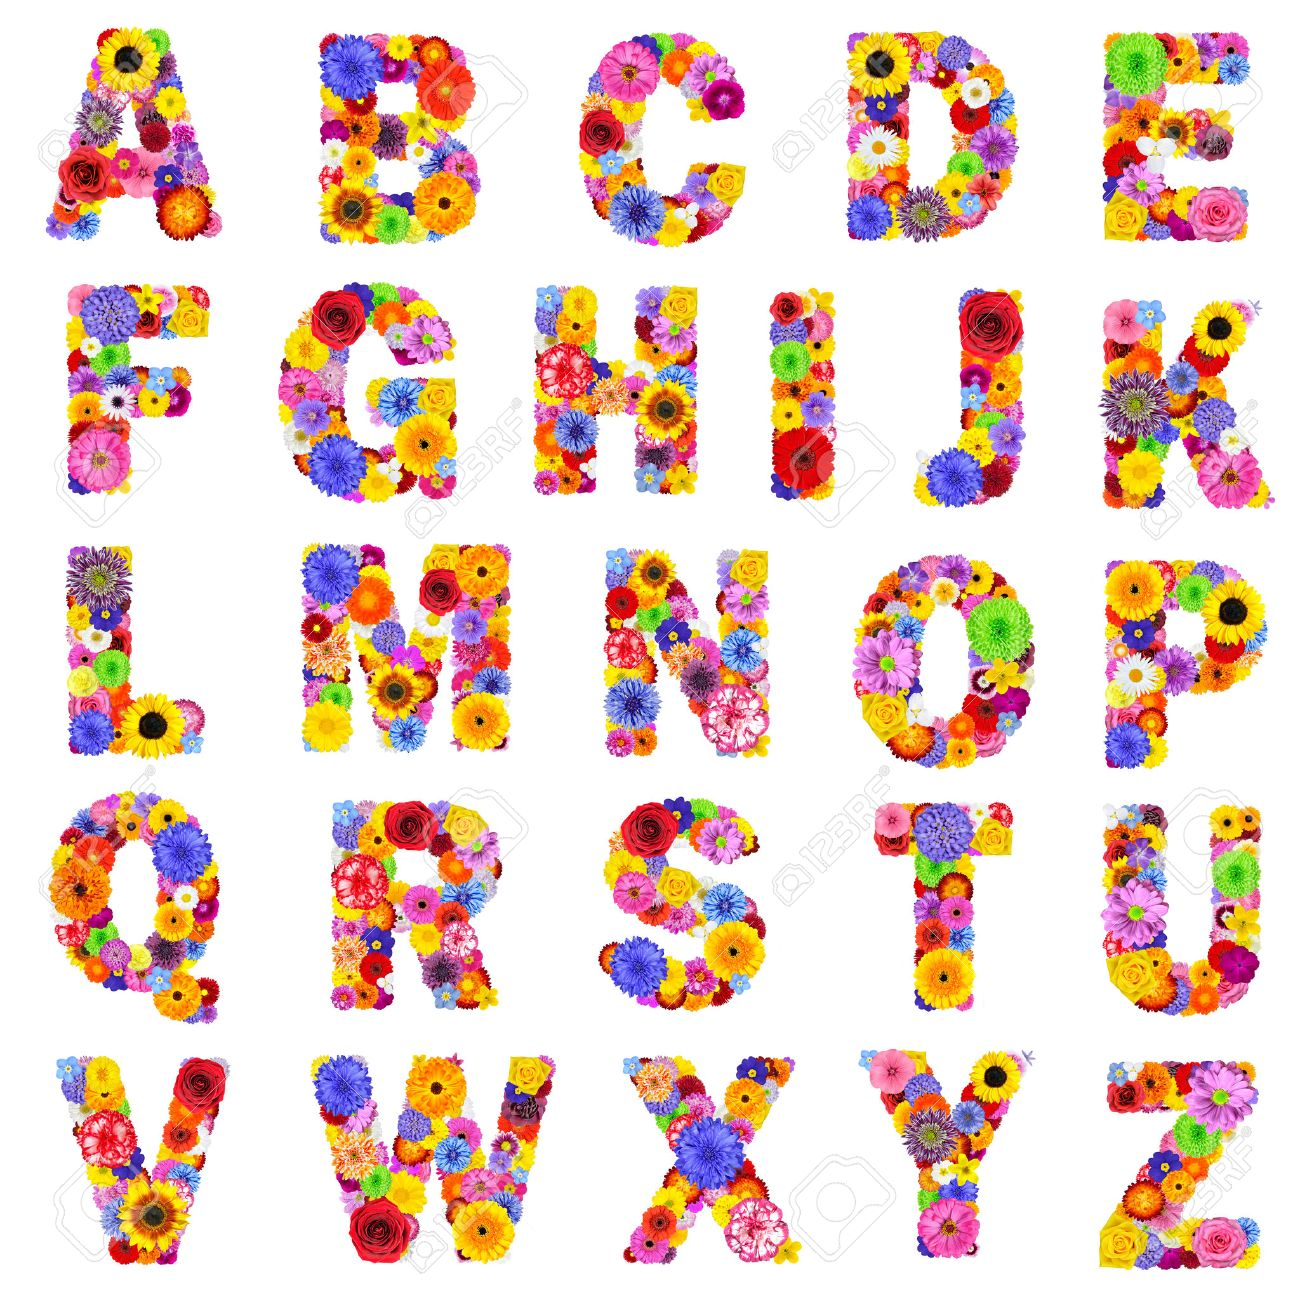 Alphabet A Images amp Stock Pictures Royalty Free Alphabet